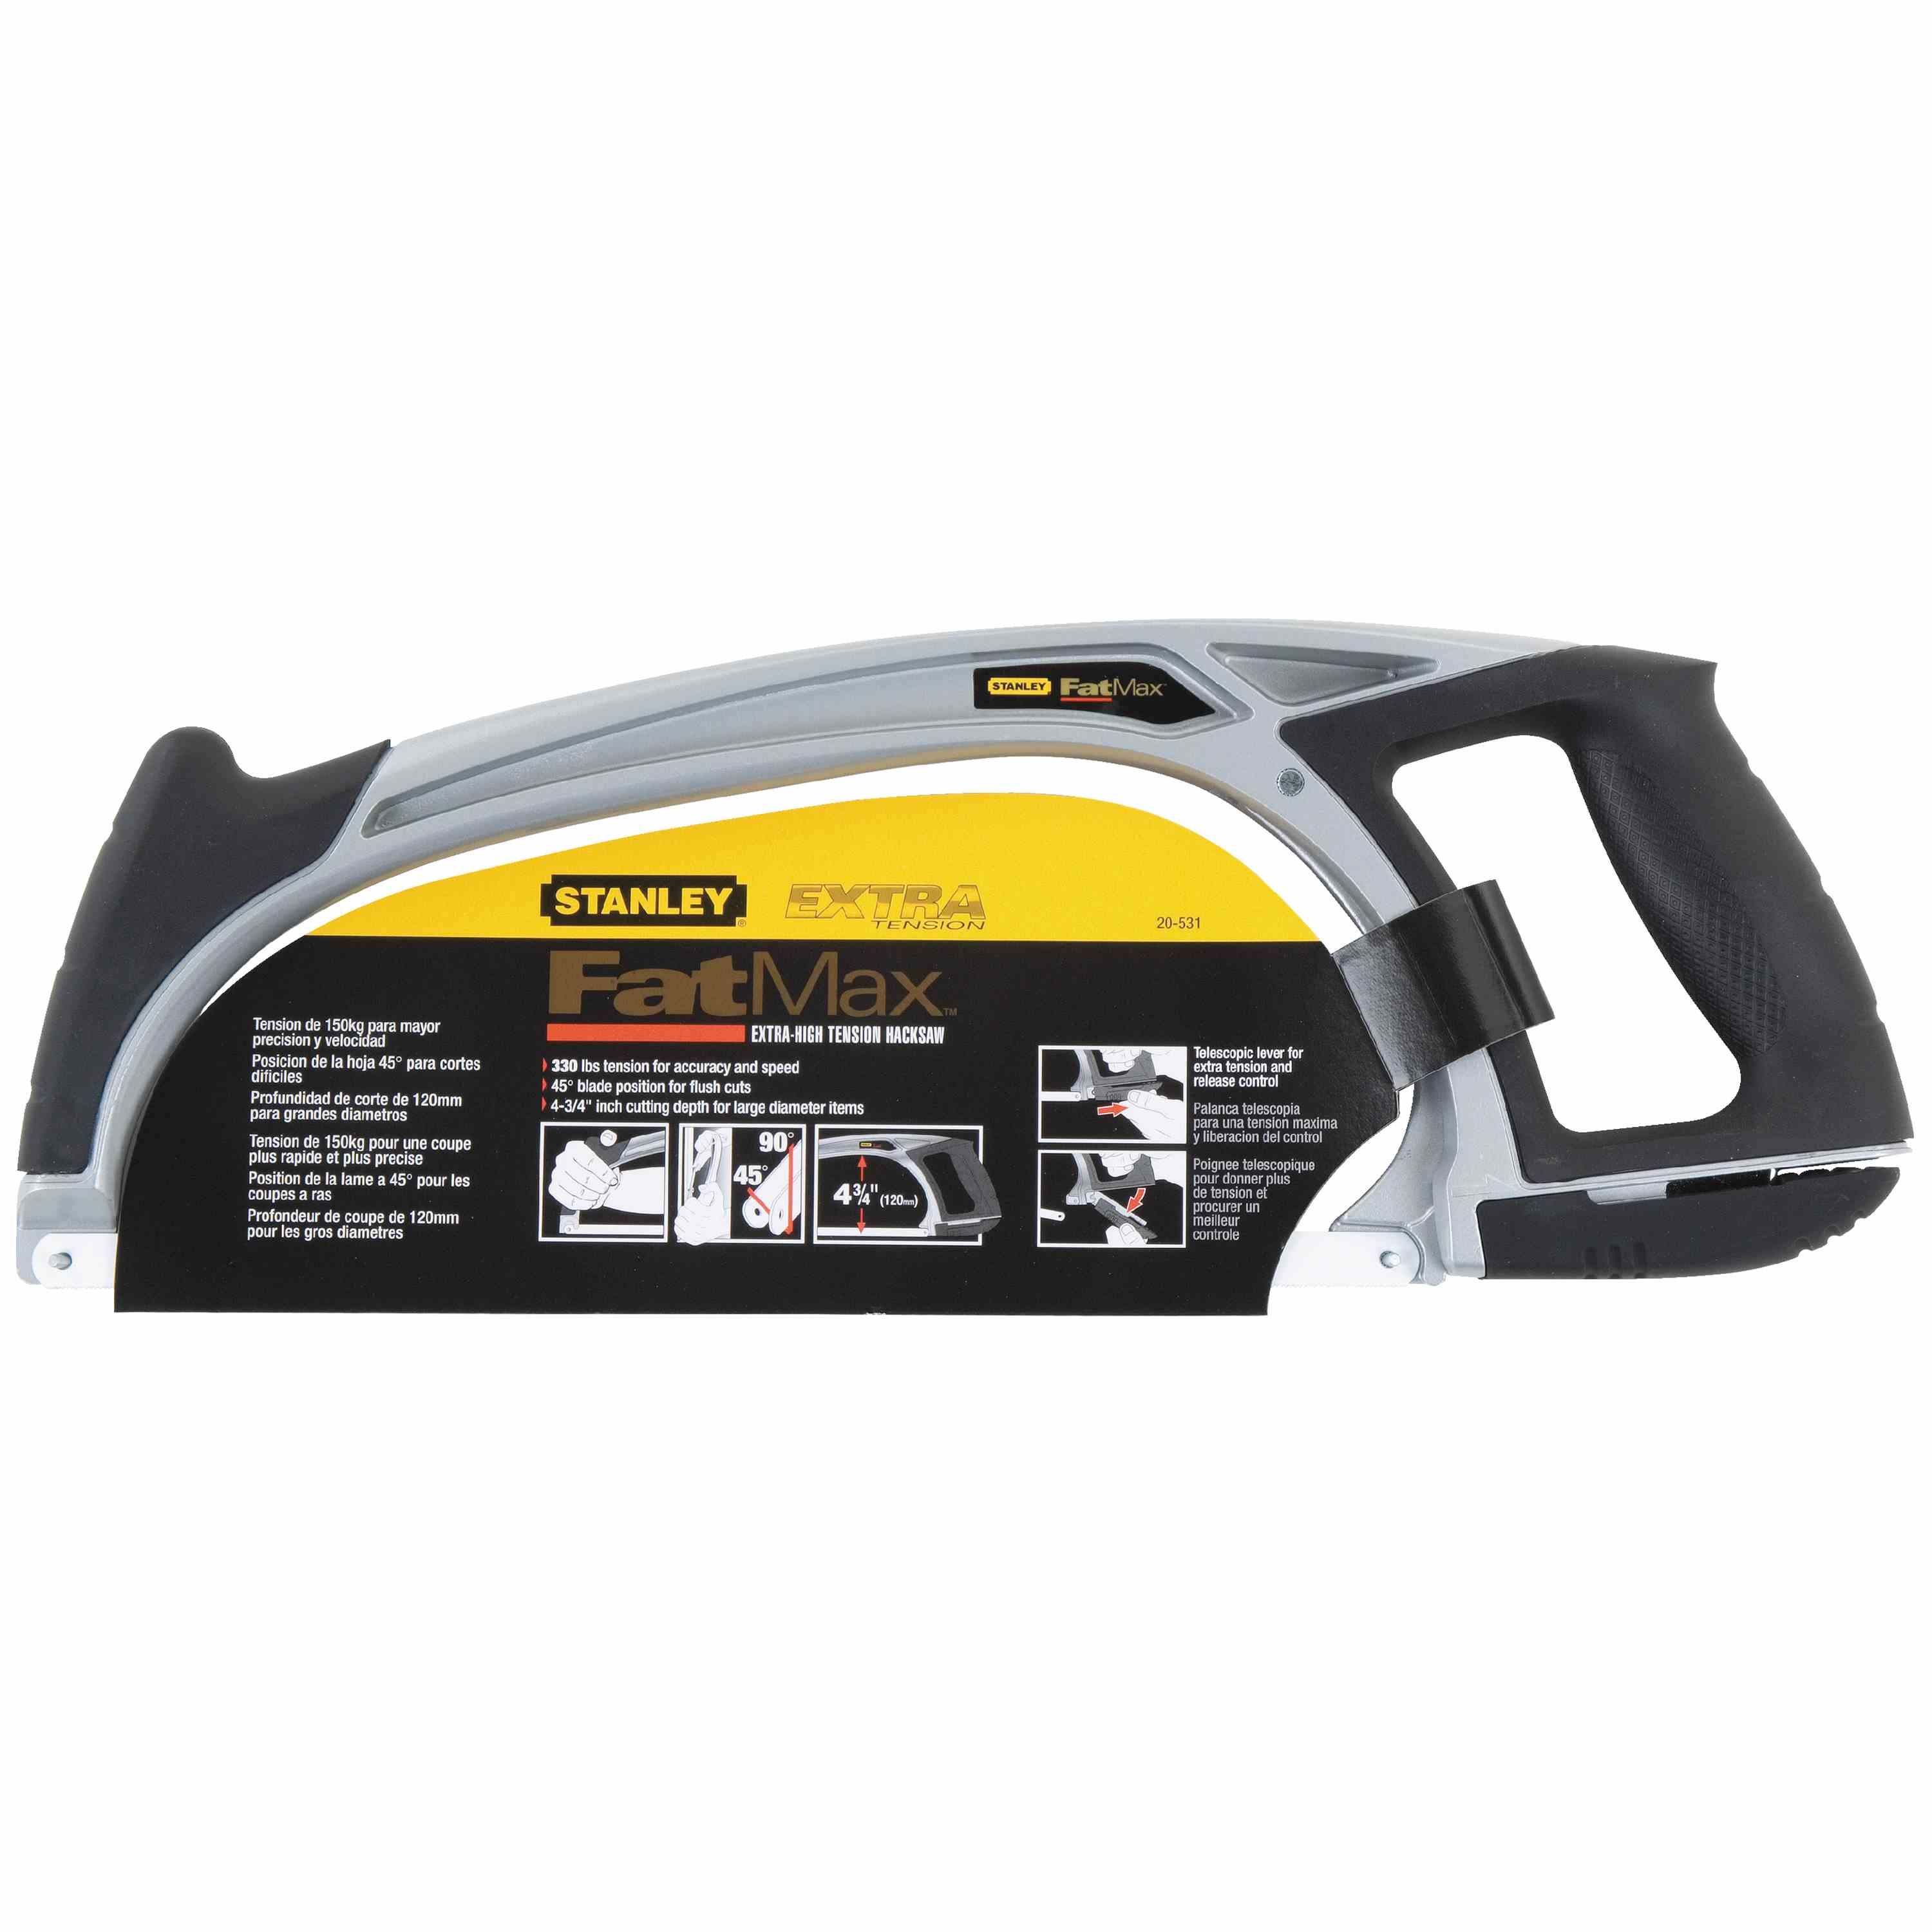 Stanley Tools - 12 in FATMAX HighTension Hacksaw - 20-531